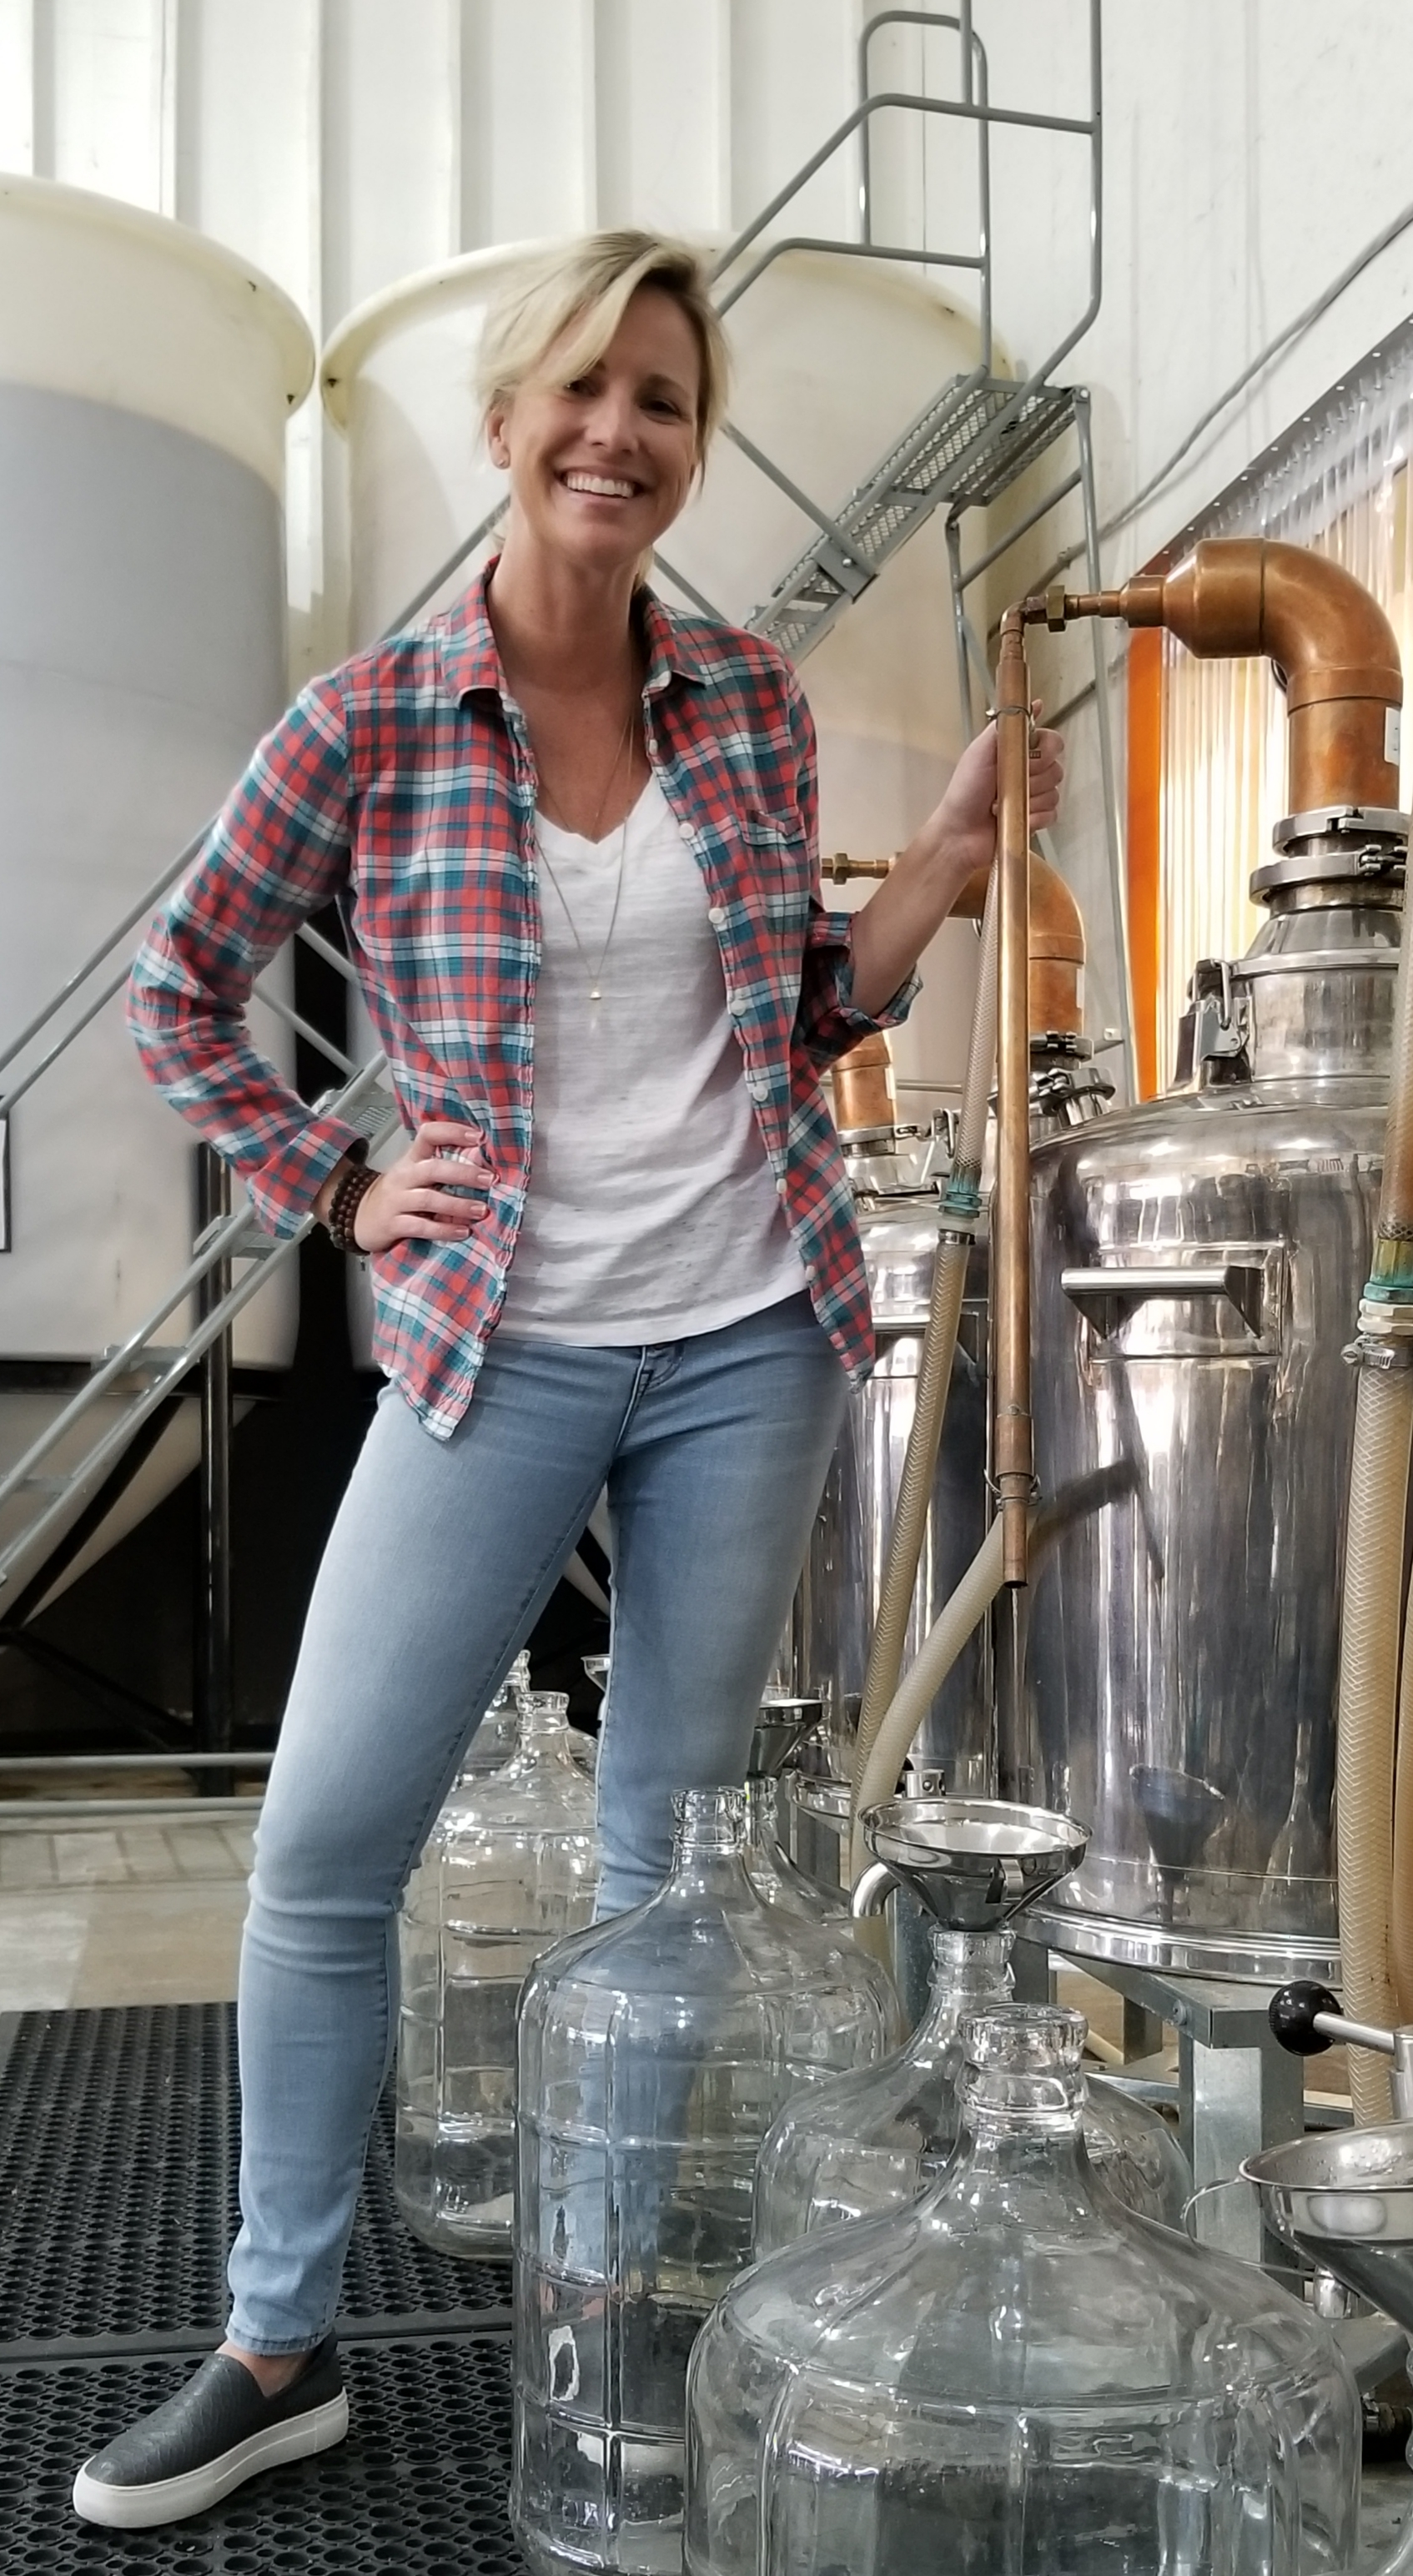 Jamie Windon, CEO and co-founder of Lyon Distilling